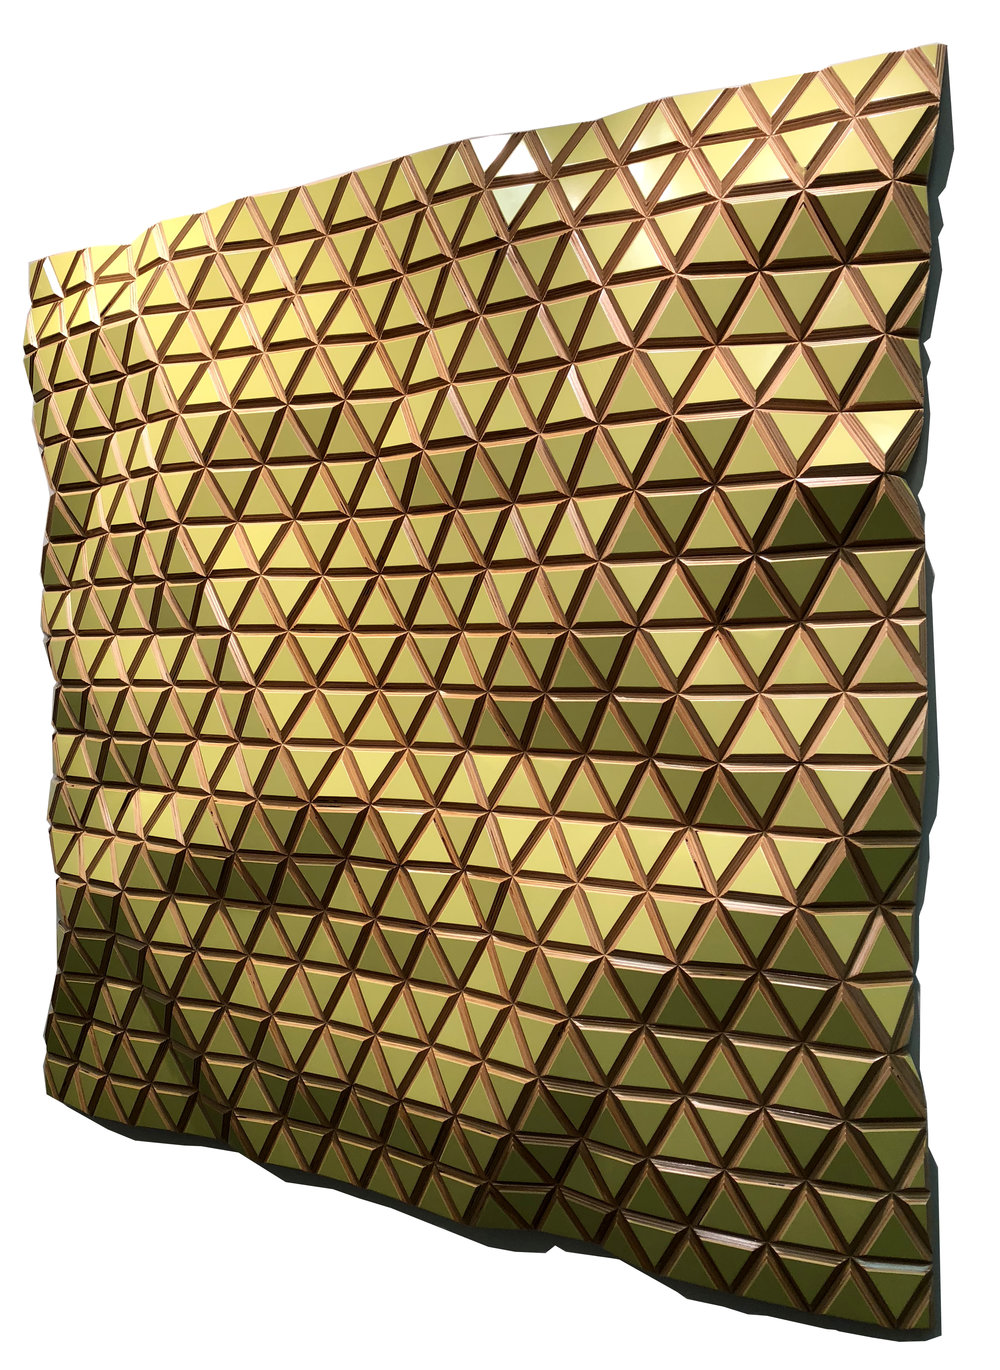 HGU_FR-Honeycomb Conjecture_57x59in_144x150cm_R2.jpg